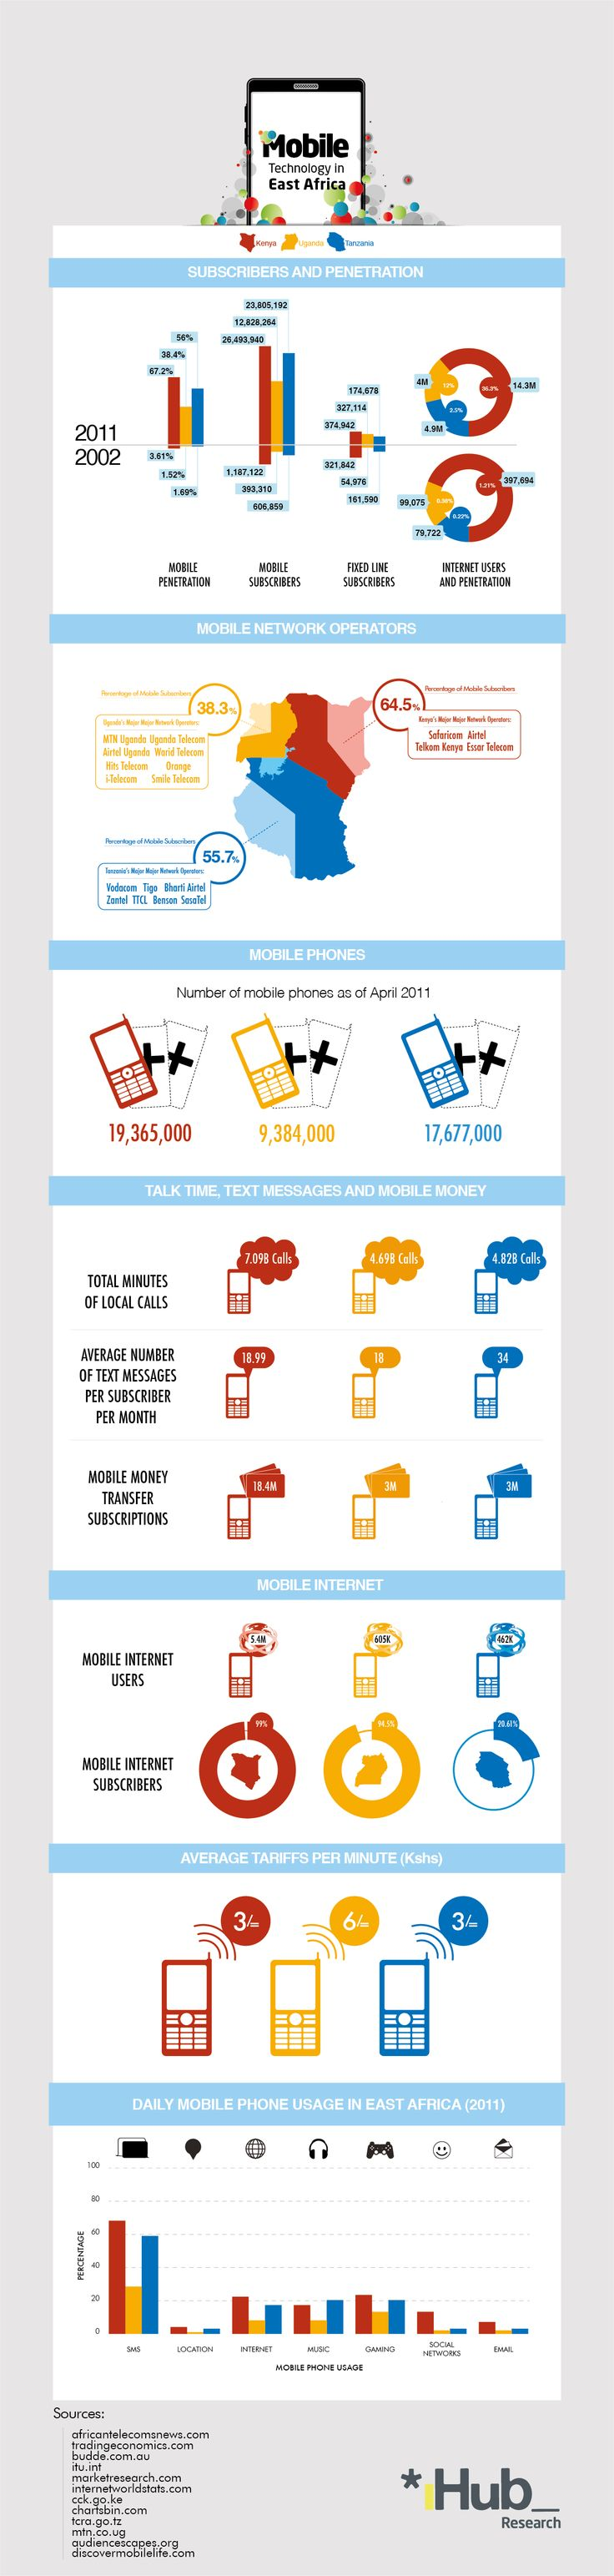 Mobile Technology in East Africa